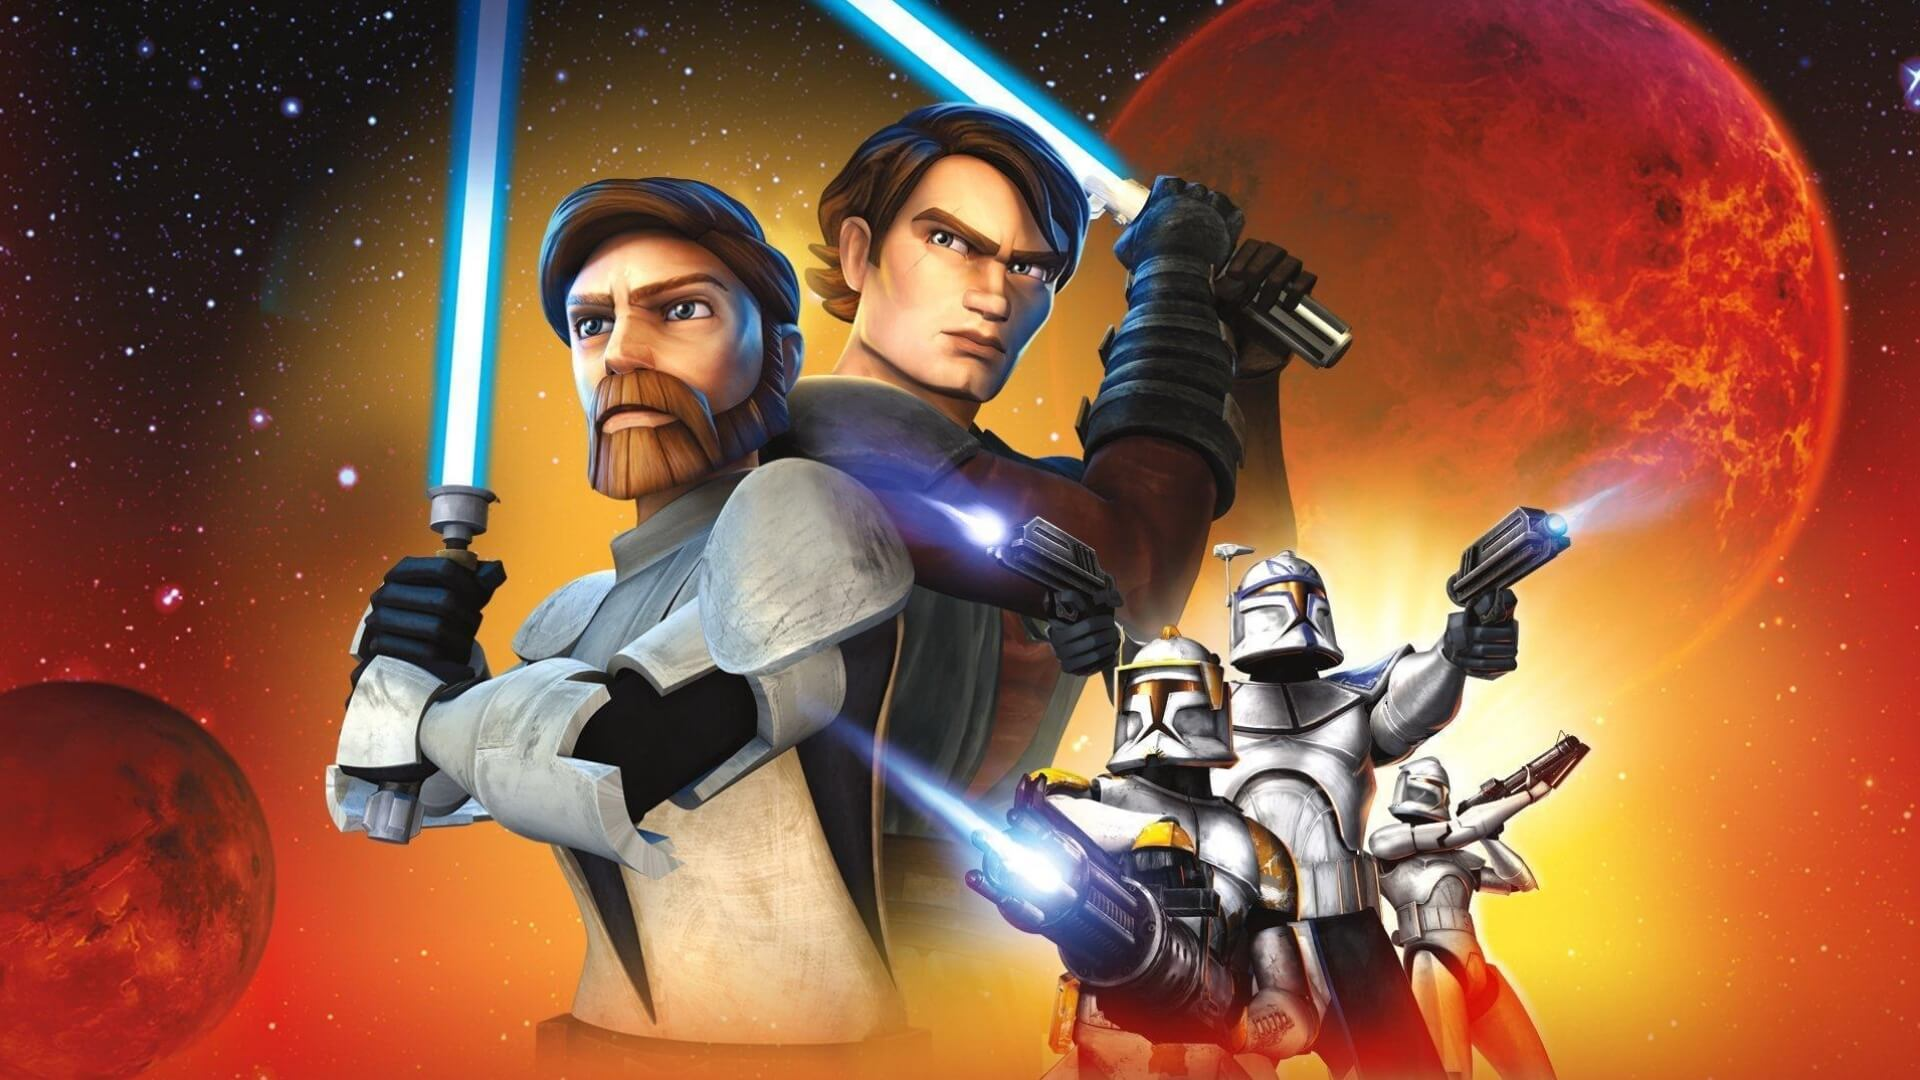 Star Wars: The Clone Wars - Season 1 Review